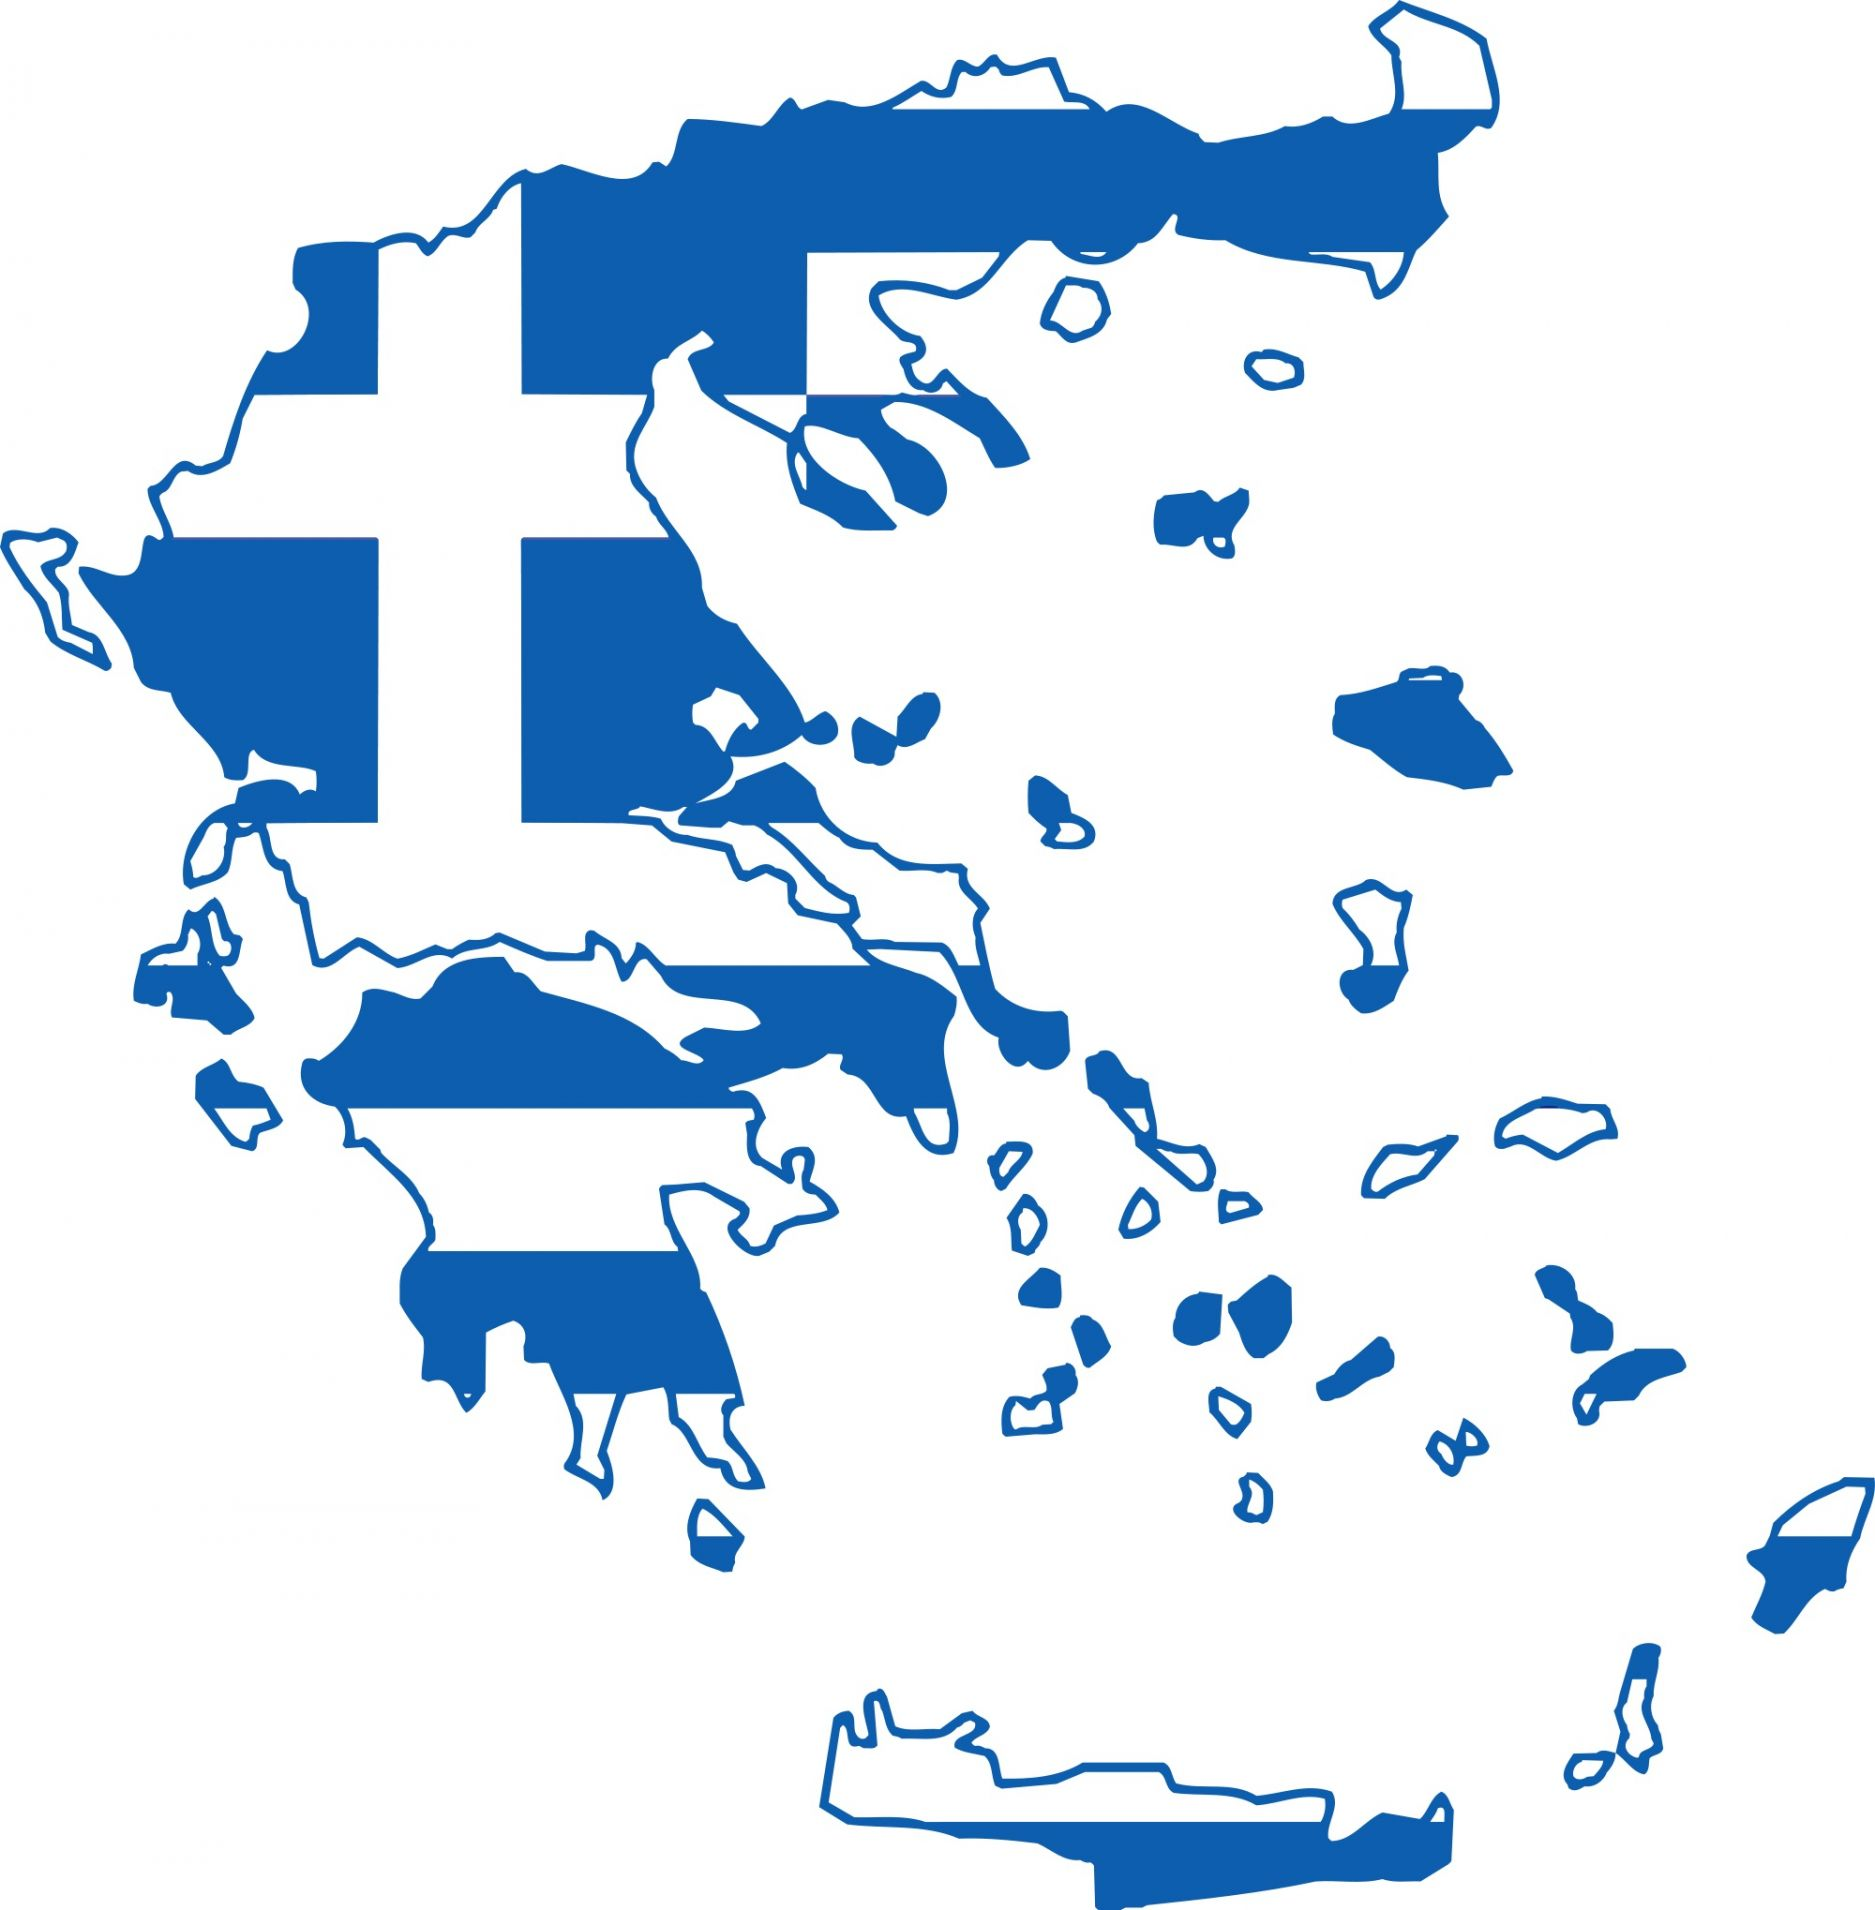 Greece flag map blank template imgflip for Greek flag template